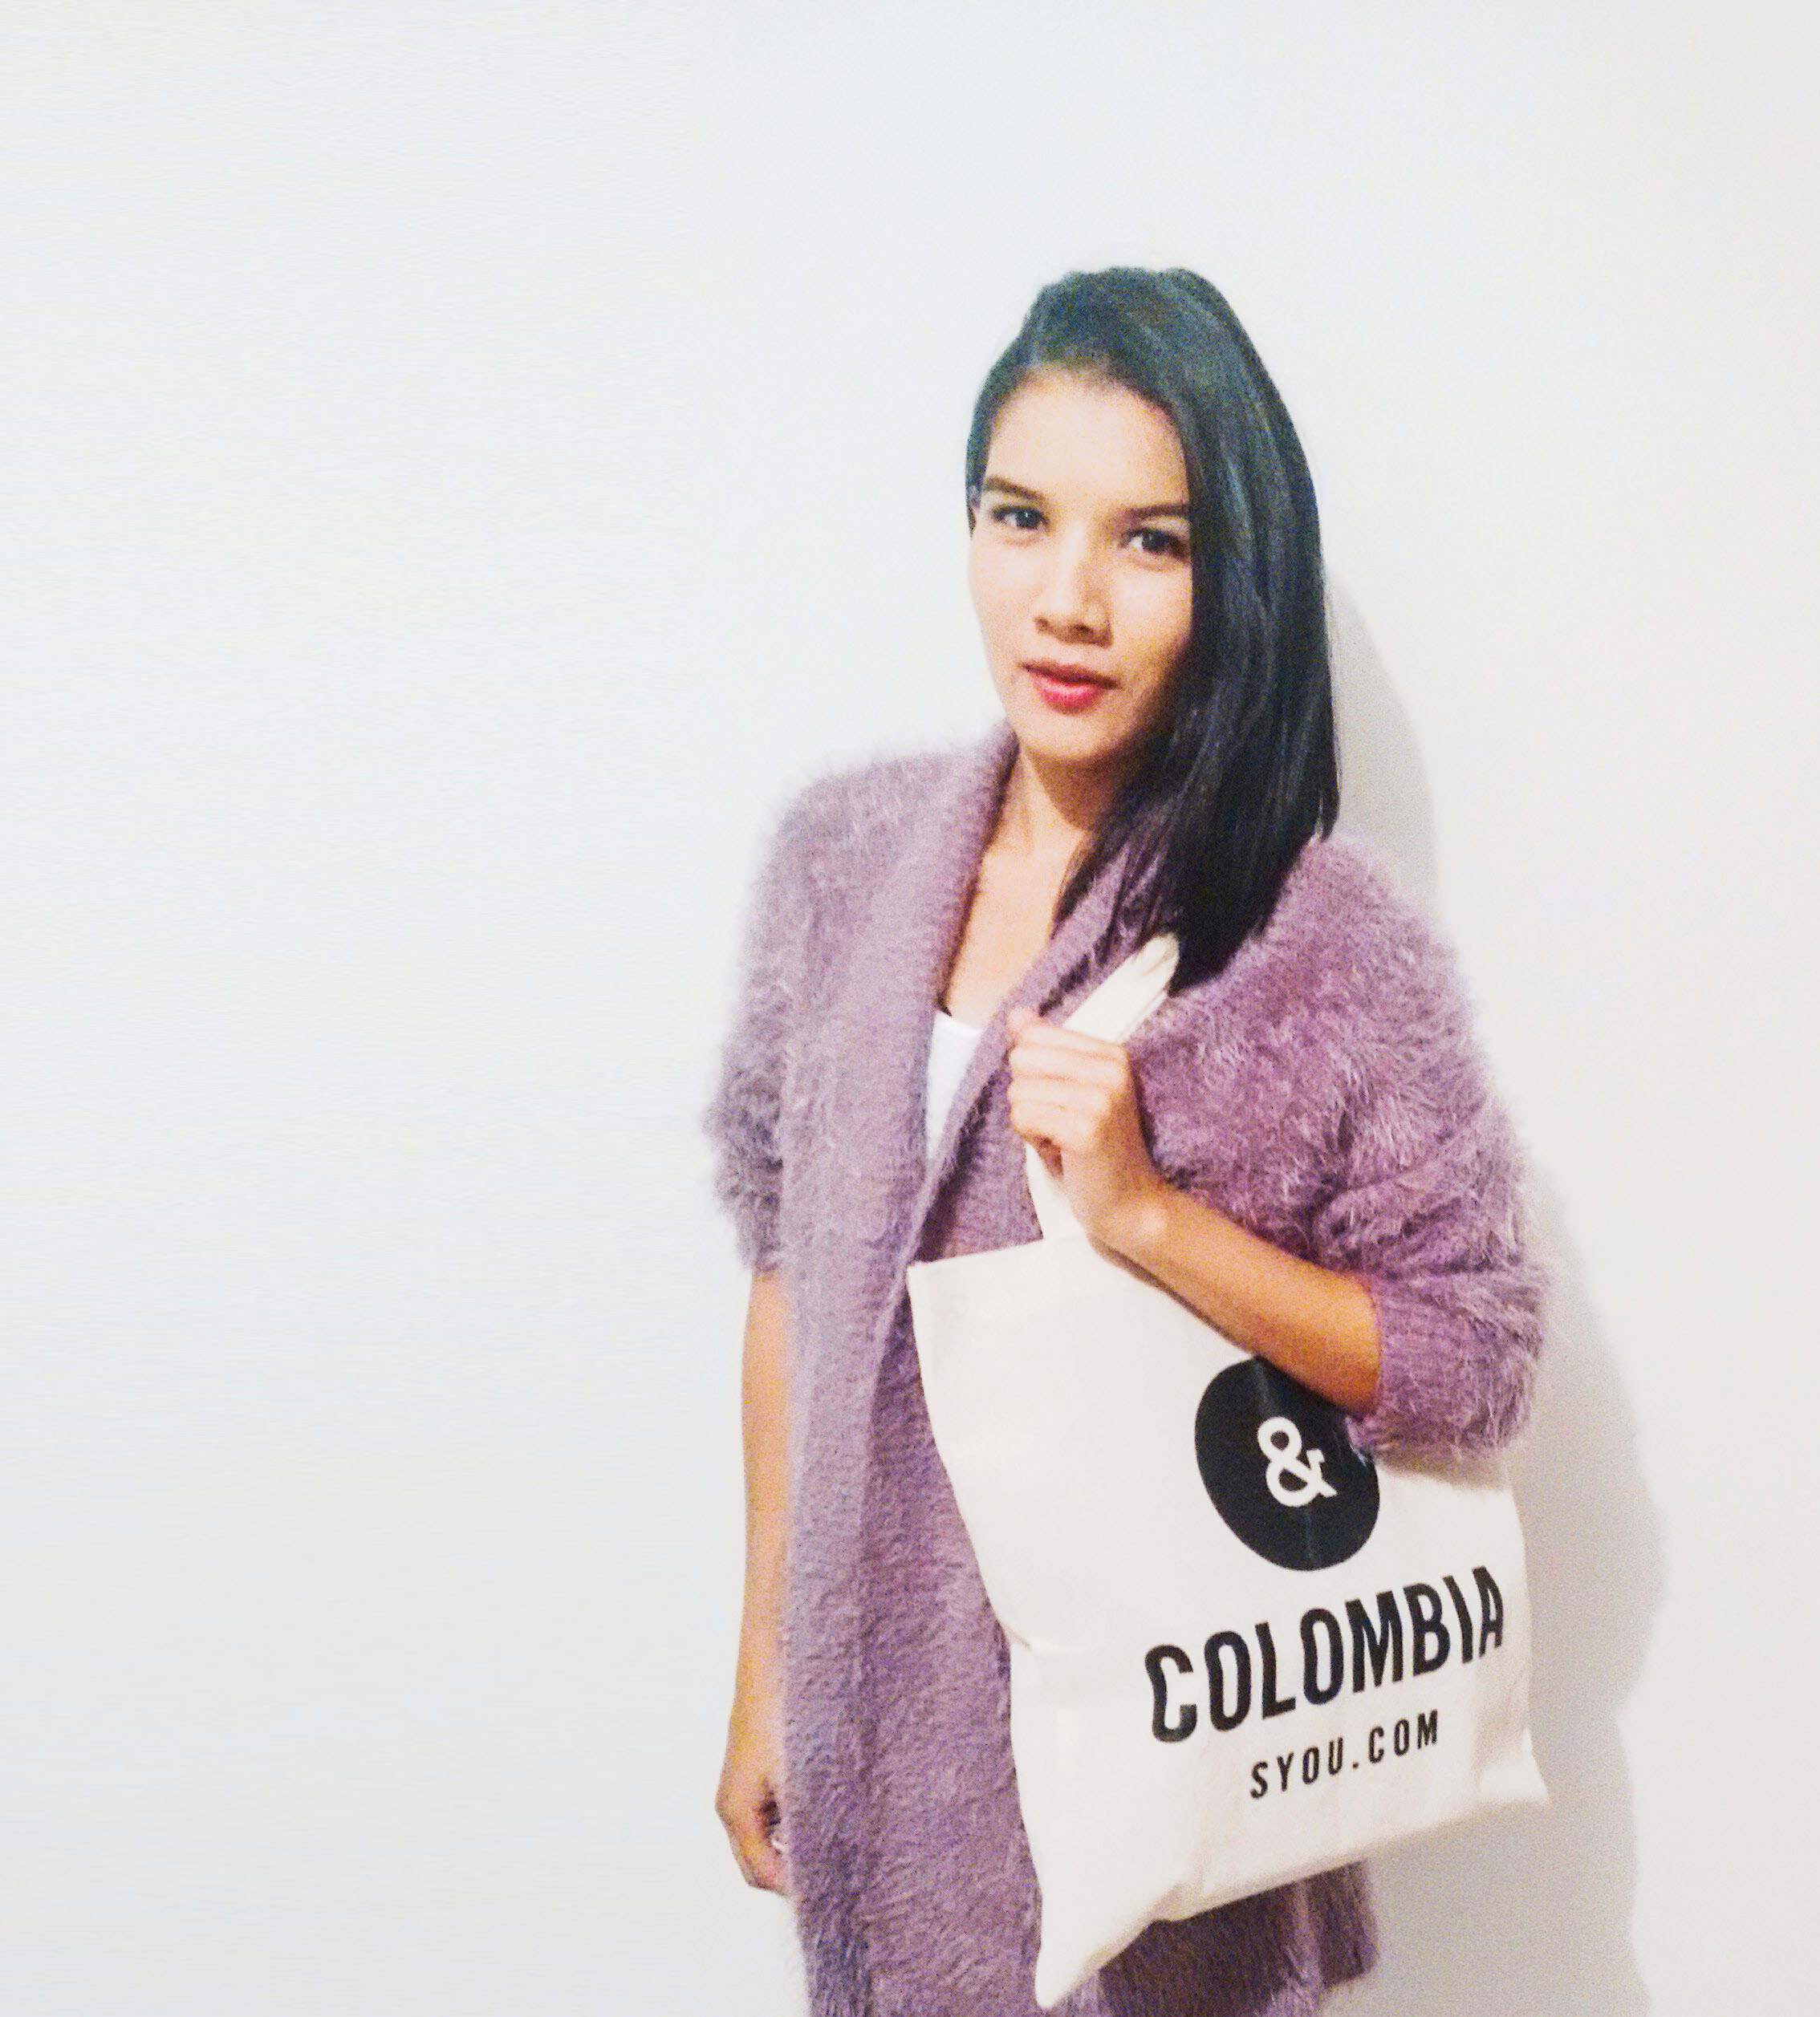 SYOU COLOMBIAN BLOGGER